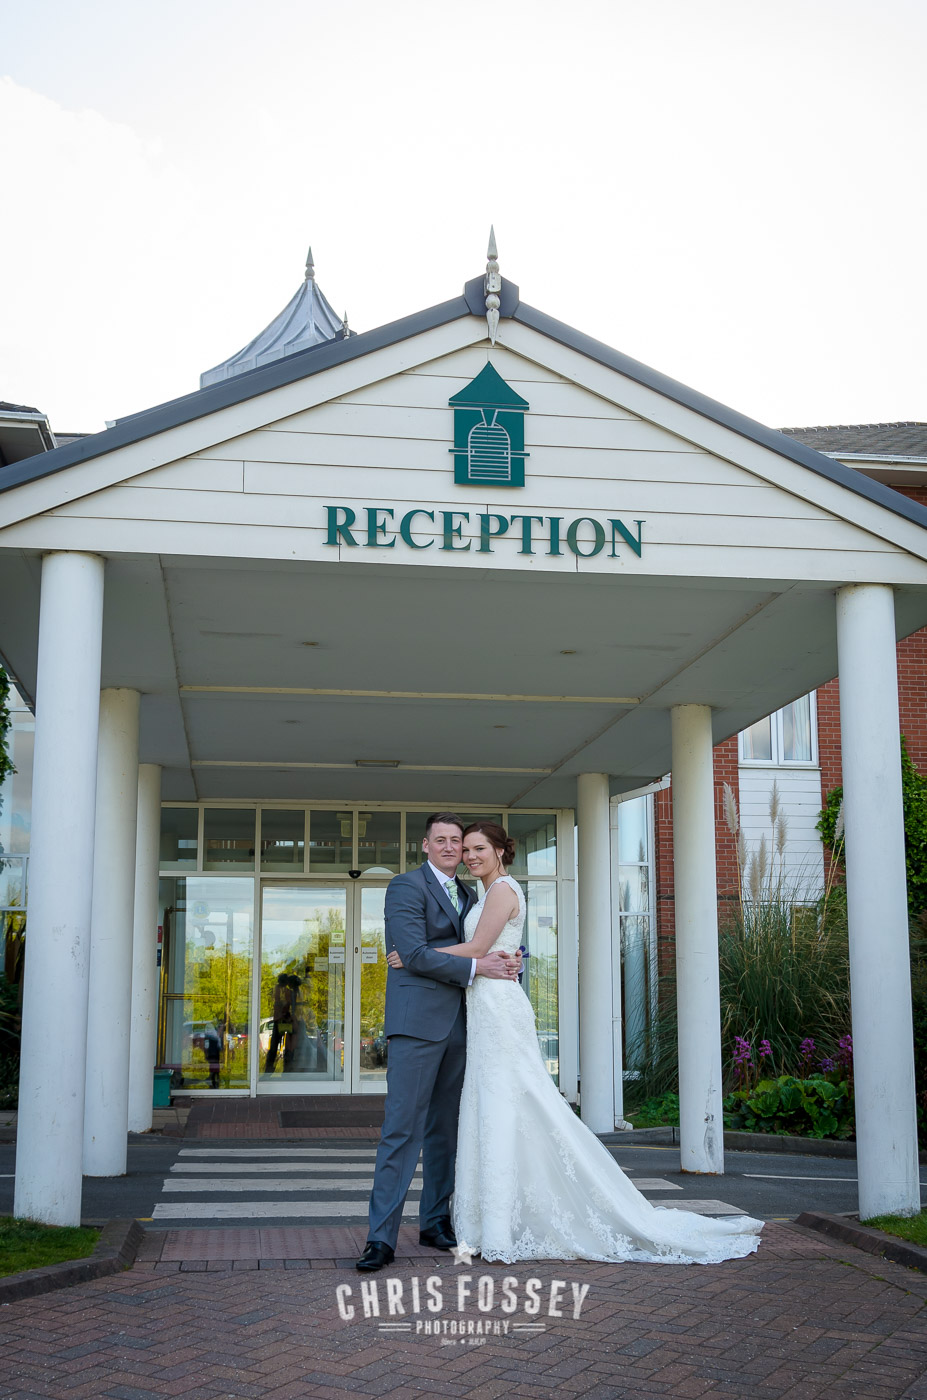 Arden Hotel Solihull Wedding Photographer Birmingham Chris Fossey Photography